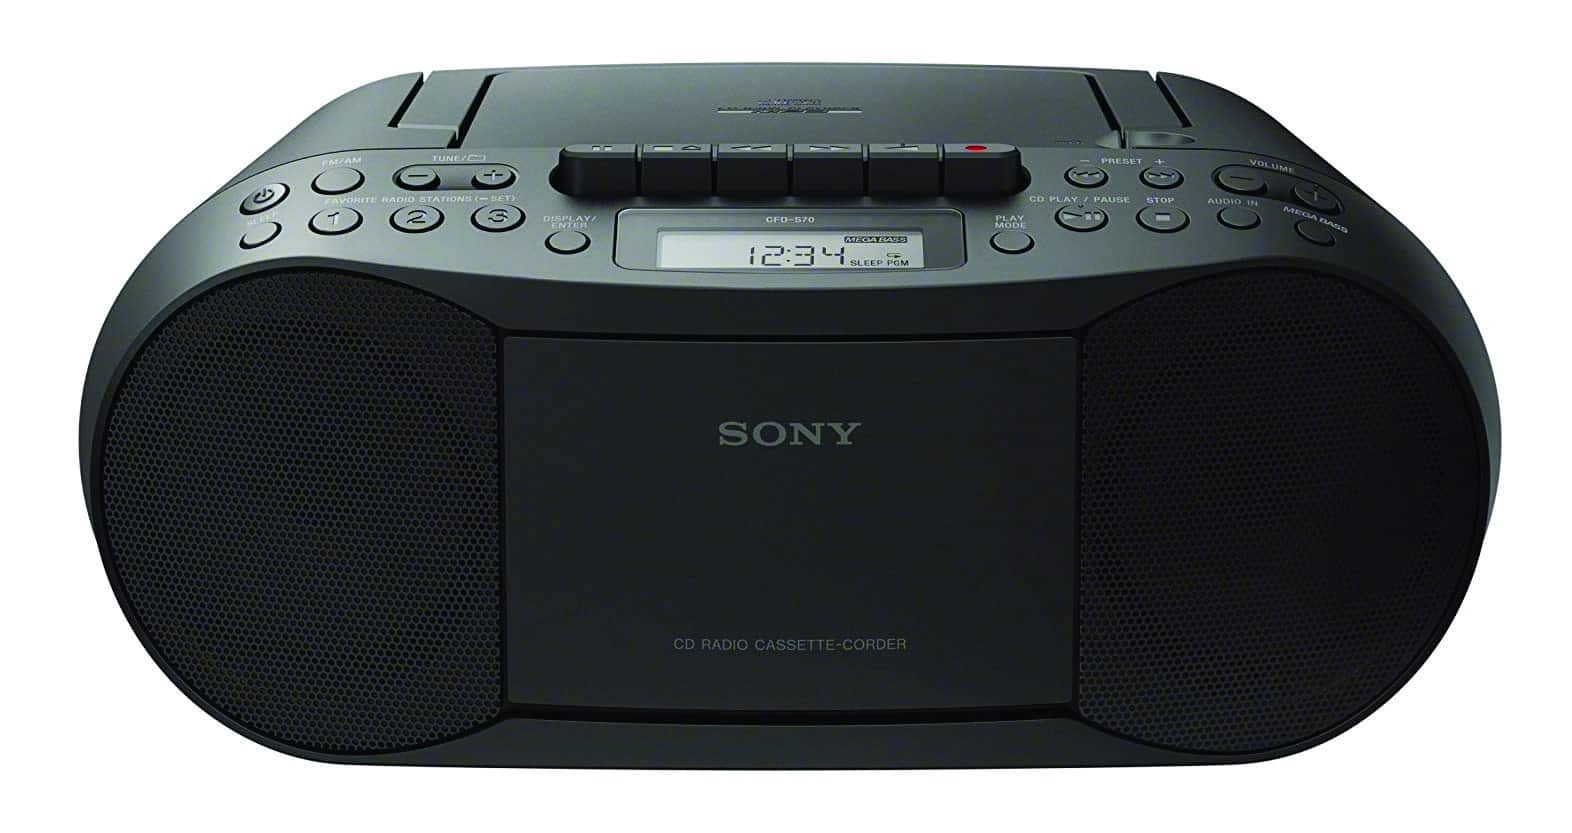 Sony Cassette Boombox Home Audio